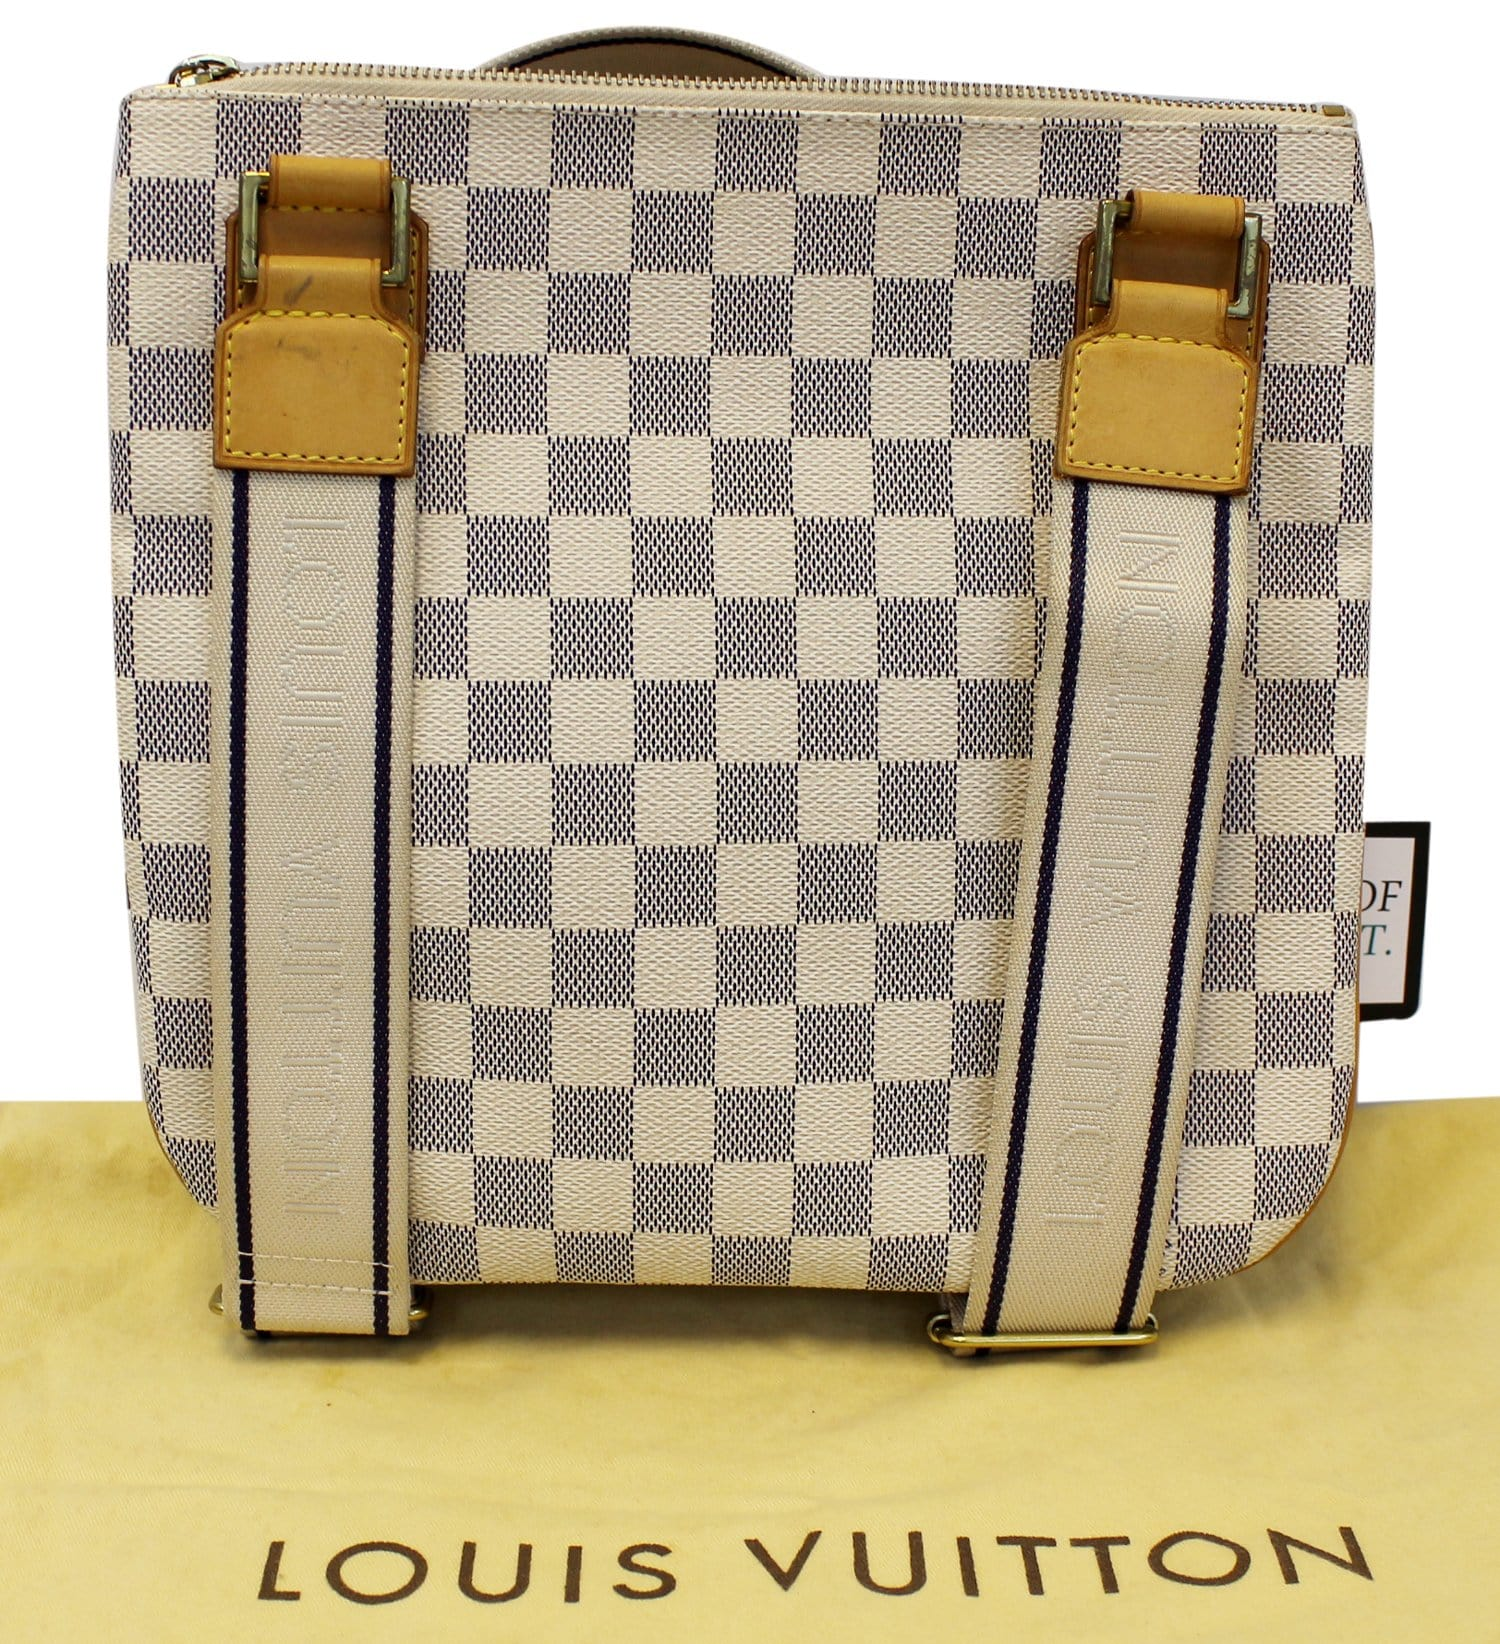 a6cce5bda2 LOUIS VUITTON Damier Azur Pochette Bosphore Crossbody Bag